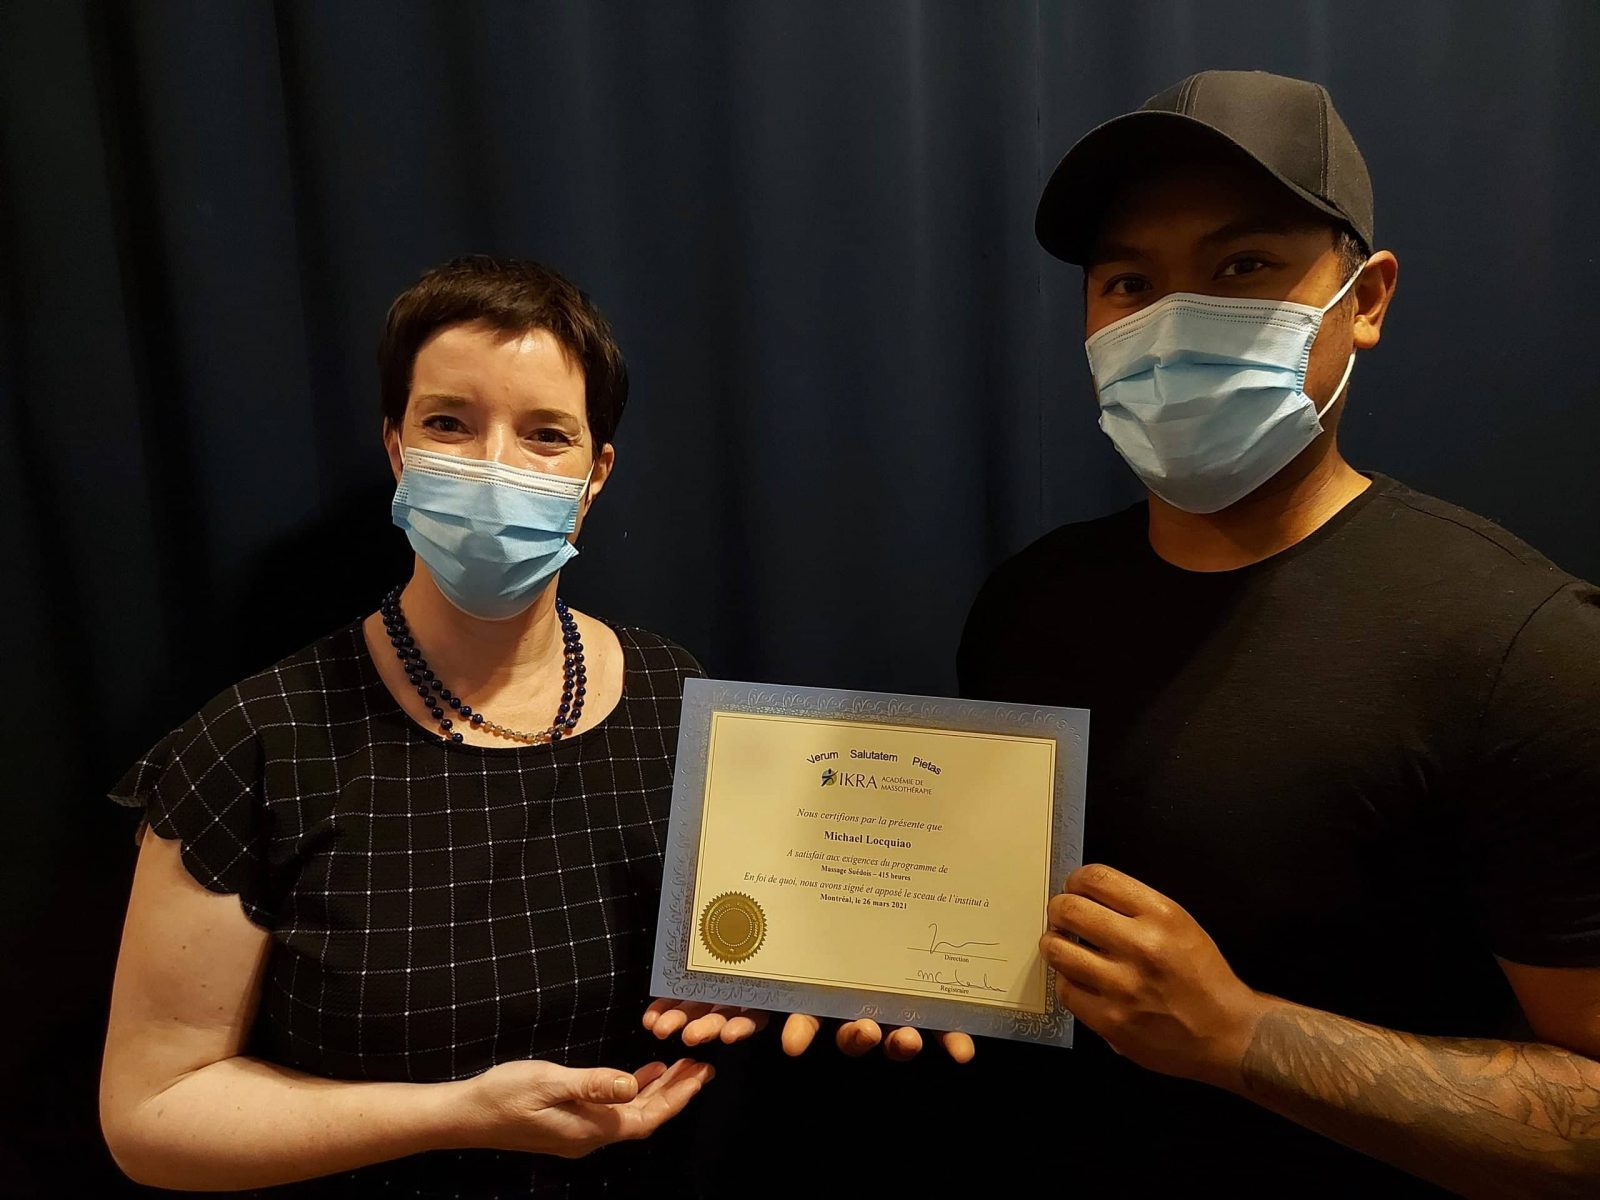 Michael Locquiao receives his diploma from IKRA Academy of Massage Therapy